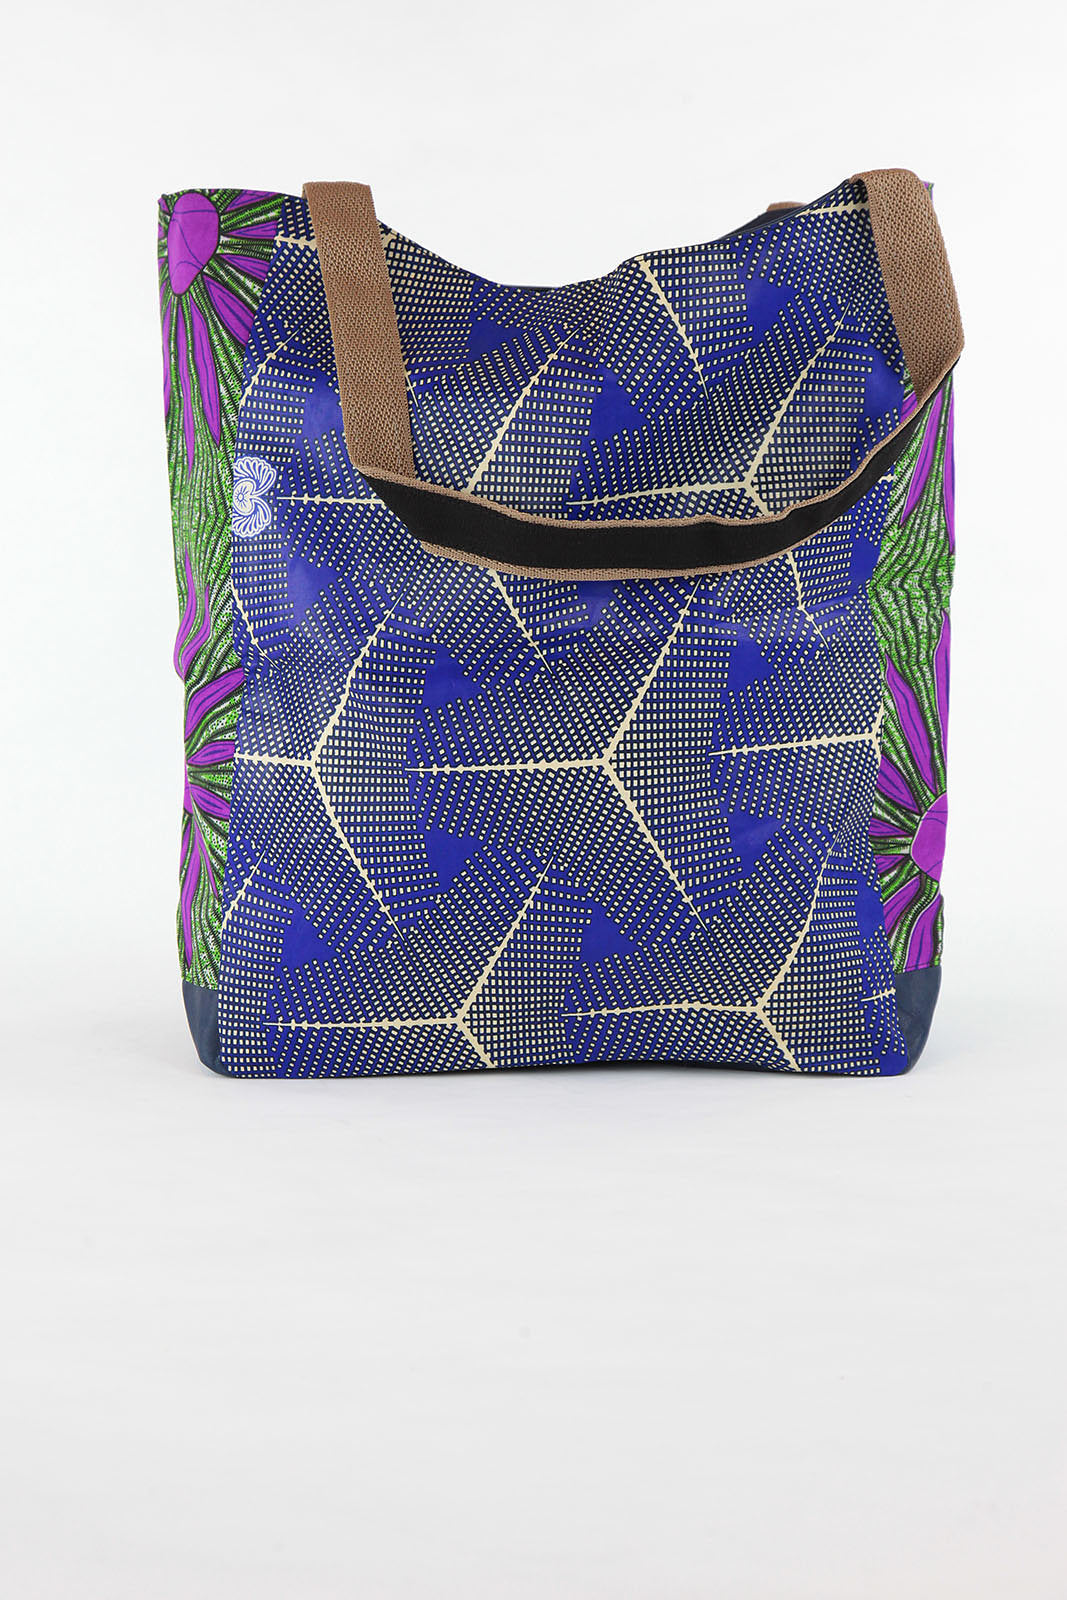 African Print Shopper Bag-Blue/ Purple Geometric Print - Africas Closet